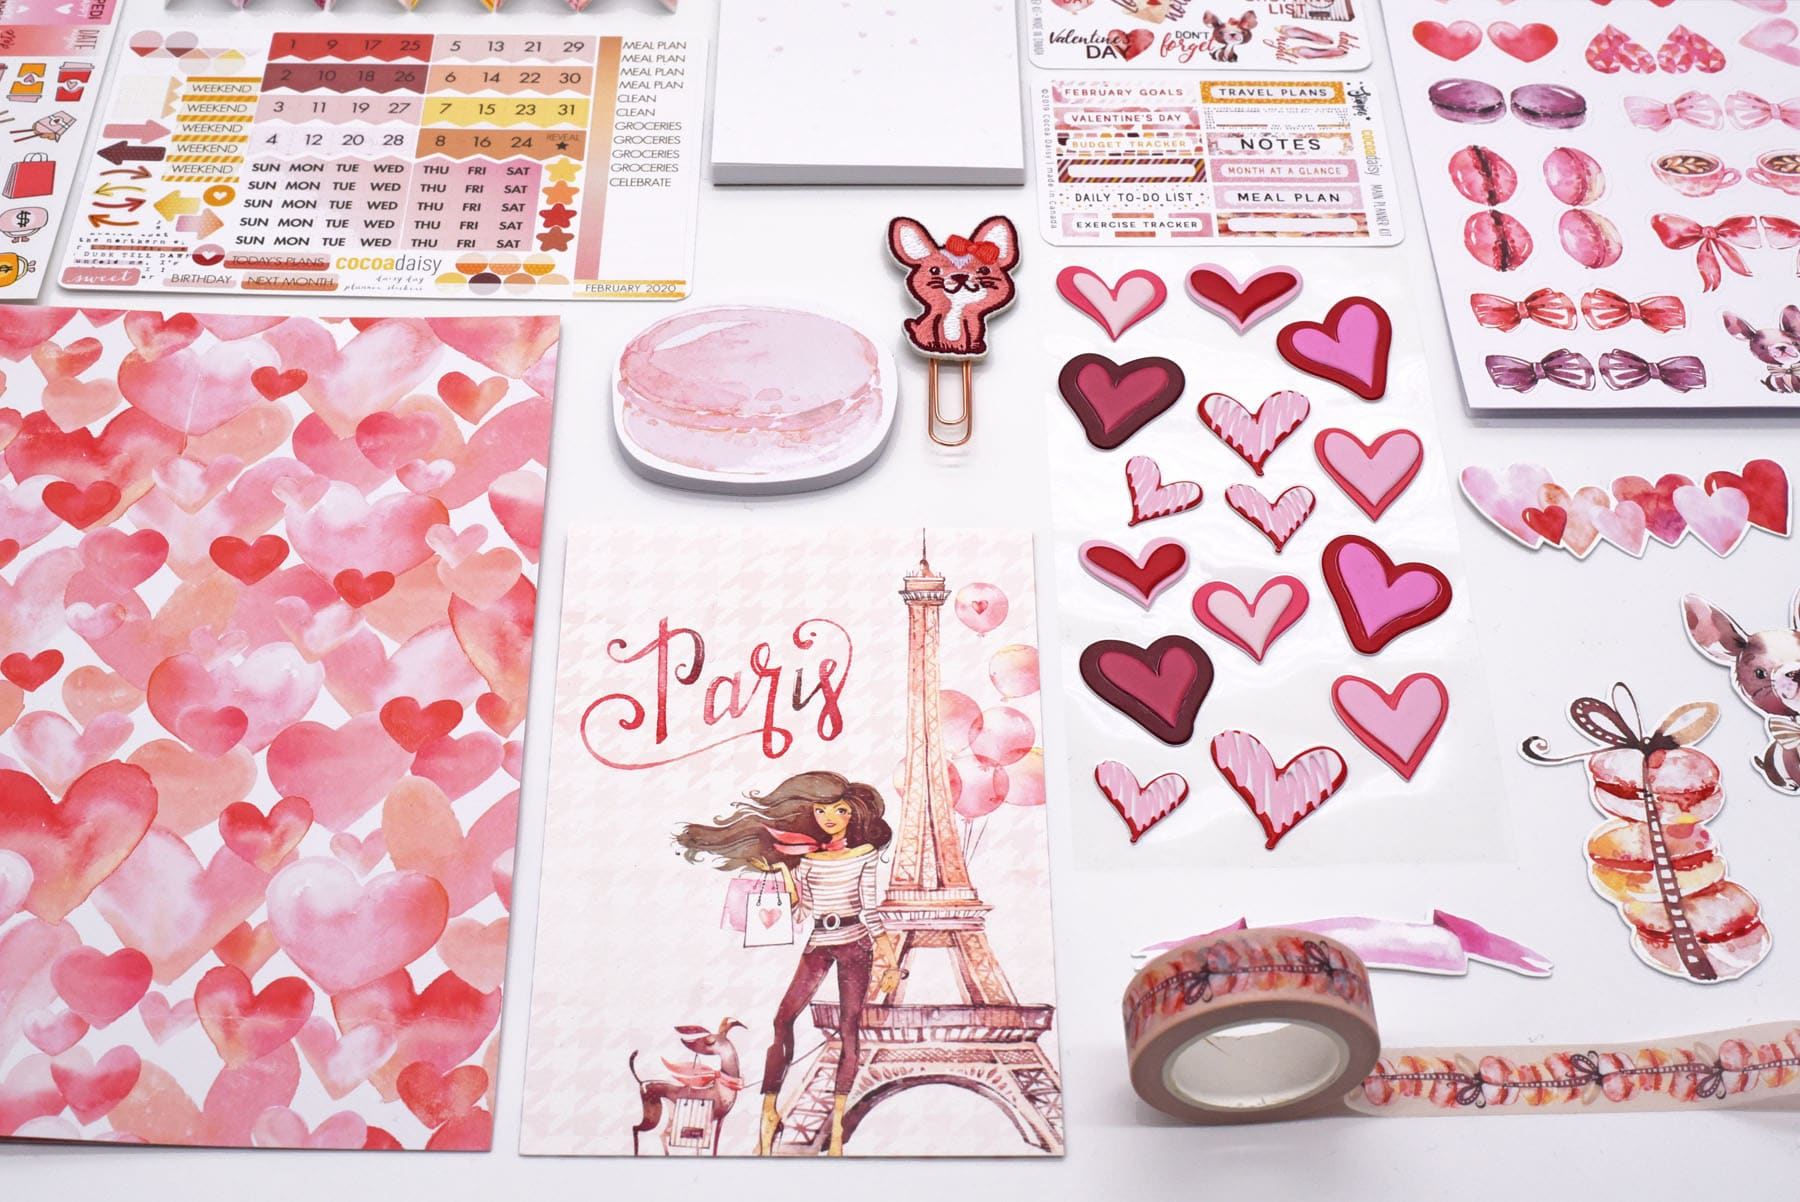 Love Notes kits